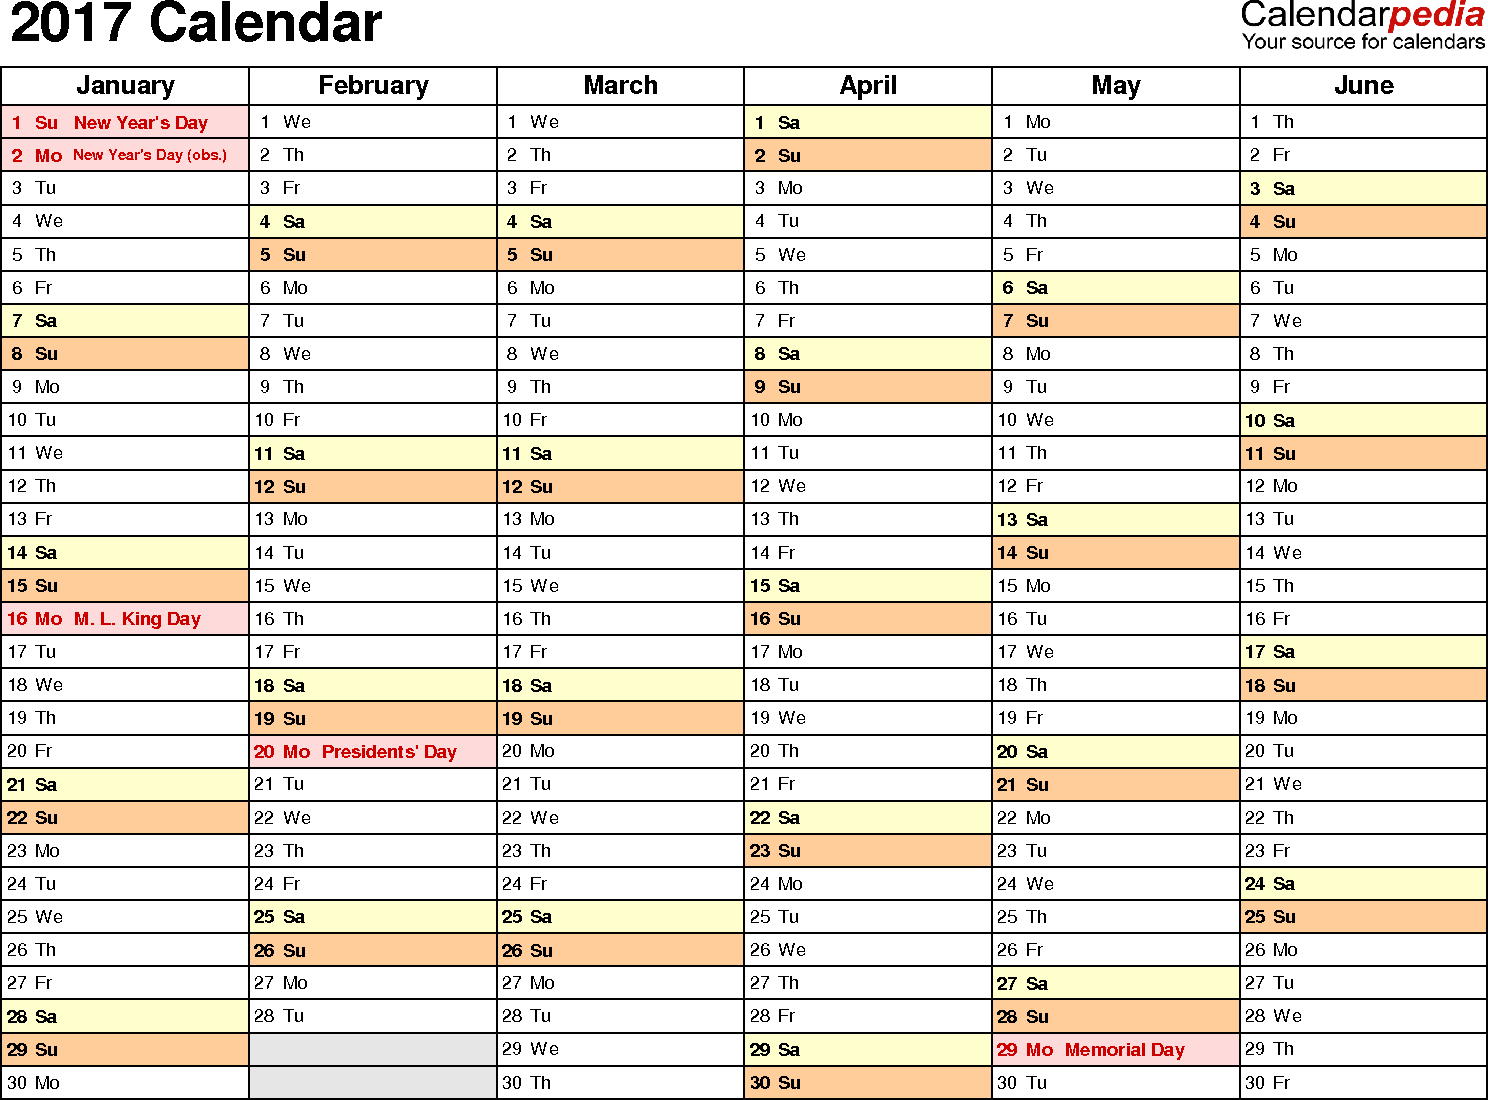 Ediblewildsus  Outstanding  Calendar  Download  Free Printable Excel Templates Xls With Extraordinary Template   Calendar For Excel Months Horizontally  Pages Landscape Orientation With Enchanting Poisson In Excel Also Family Budget Spreadsheet Excel In Addition Excel Not Equal To Sign And How To Make A T Chart In Excel As Well As Duplicate Excel Formula Additionally Amortization Formula For Excel From Calendarpediacom With Ediblewildsus  Extraordinary  Calendar  Download  Free Printable Excel Templates Xls With Enchanting Template   Calendar For Excel Months Horizontally  Pages Landscape Orientation And Outstanding Poisson In Excel Also Family Budget Spreadsheet Excel In Addition Excel Not Equal To Sign From Calendarpediacom